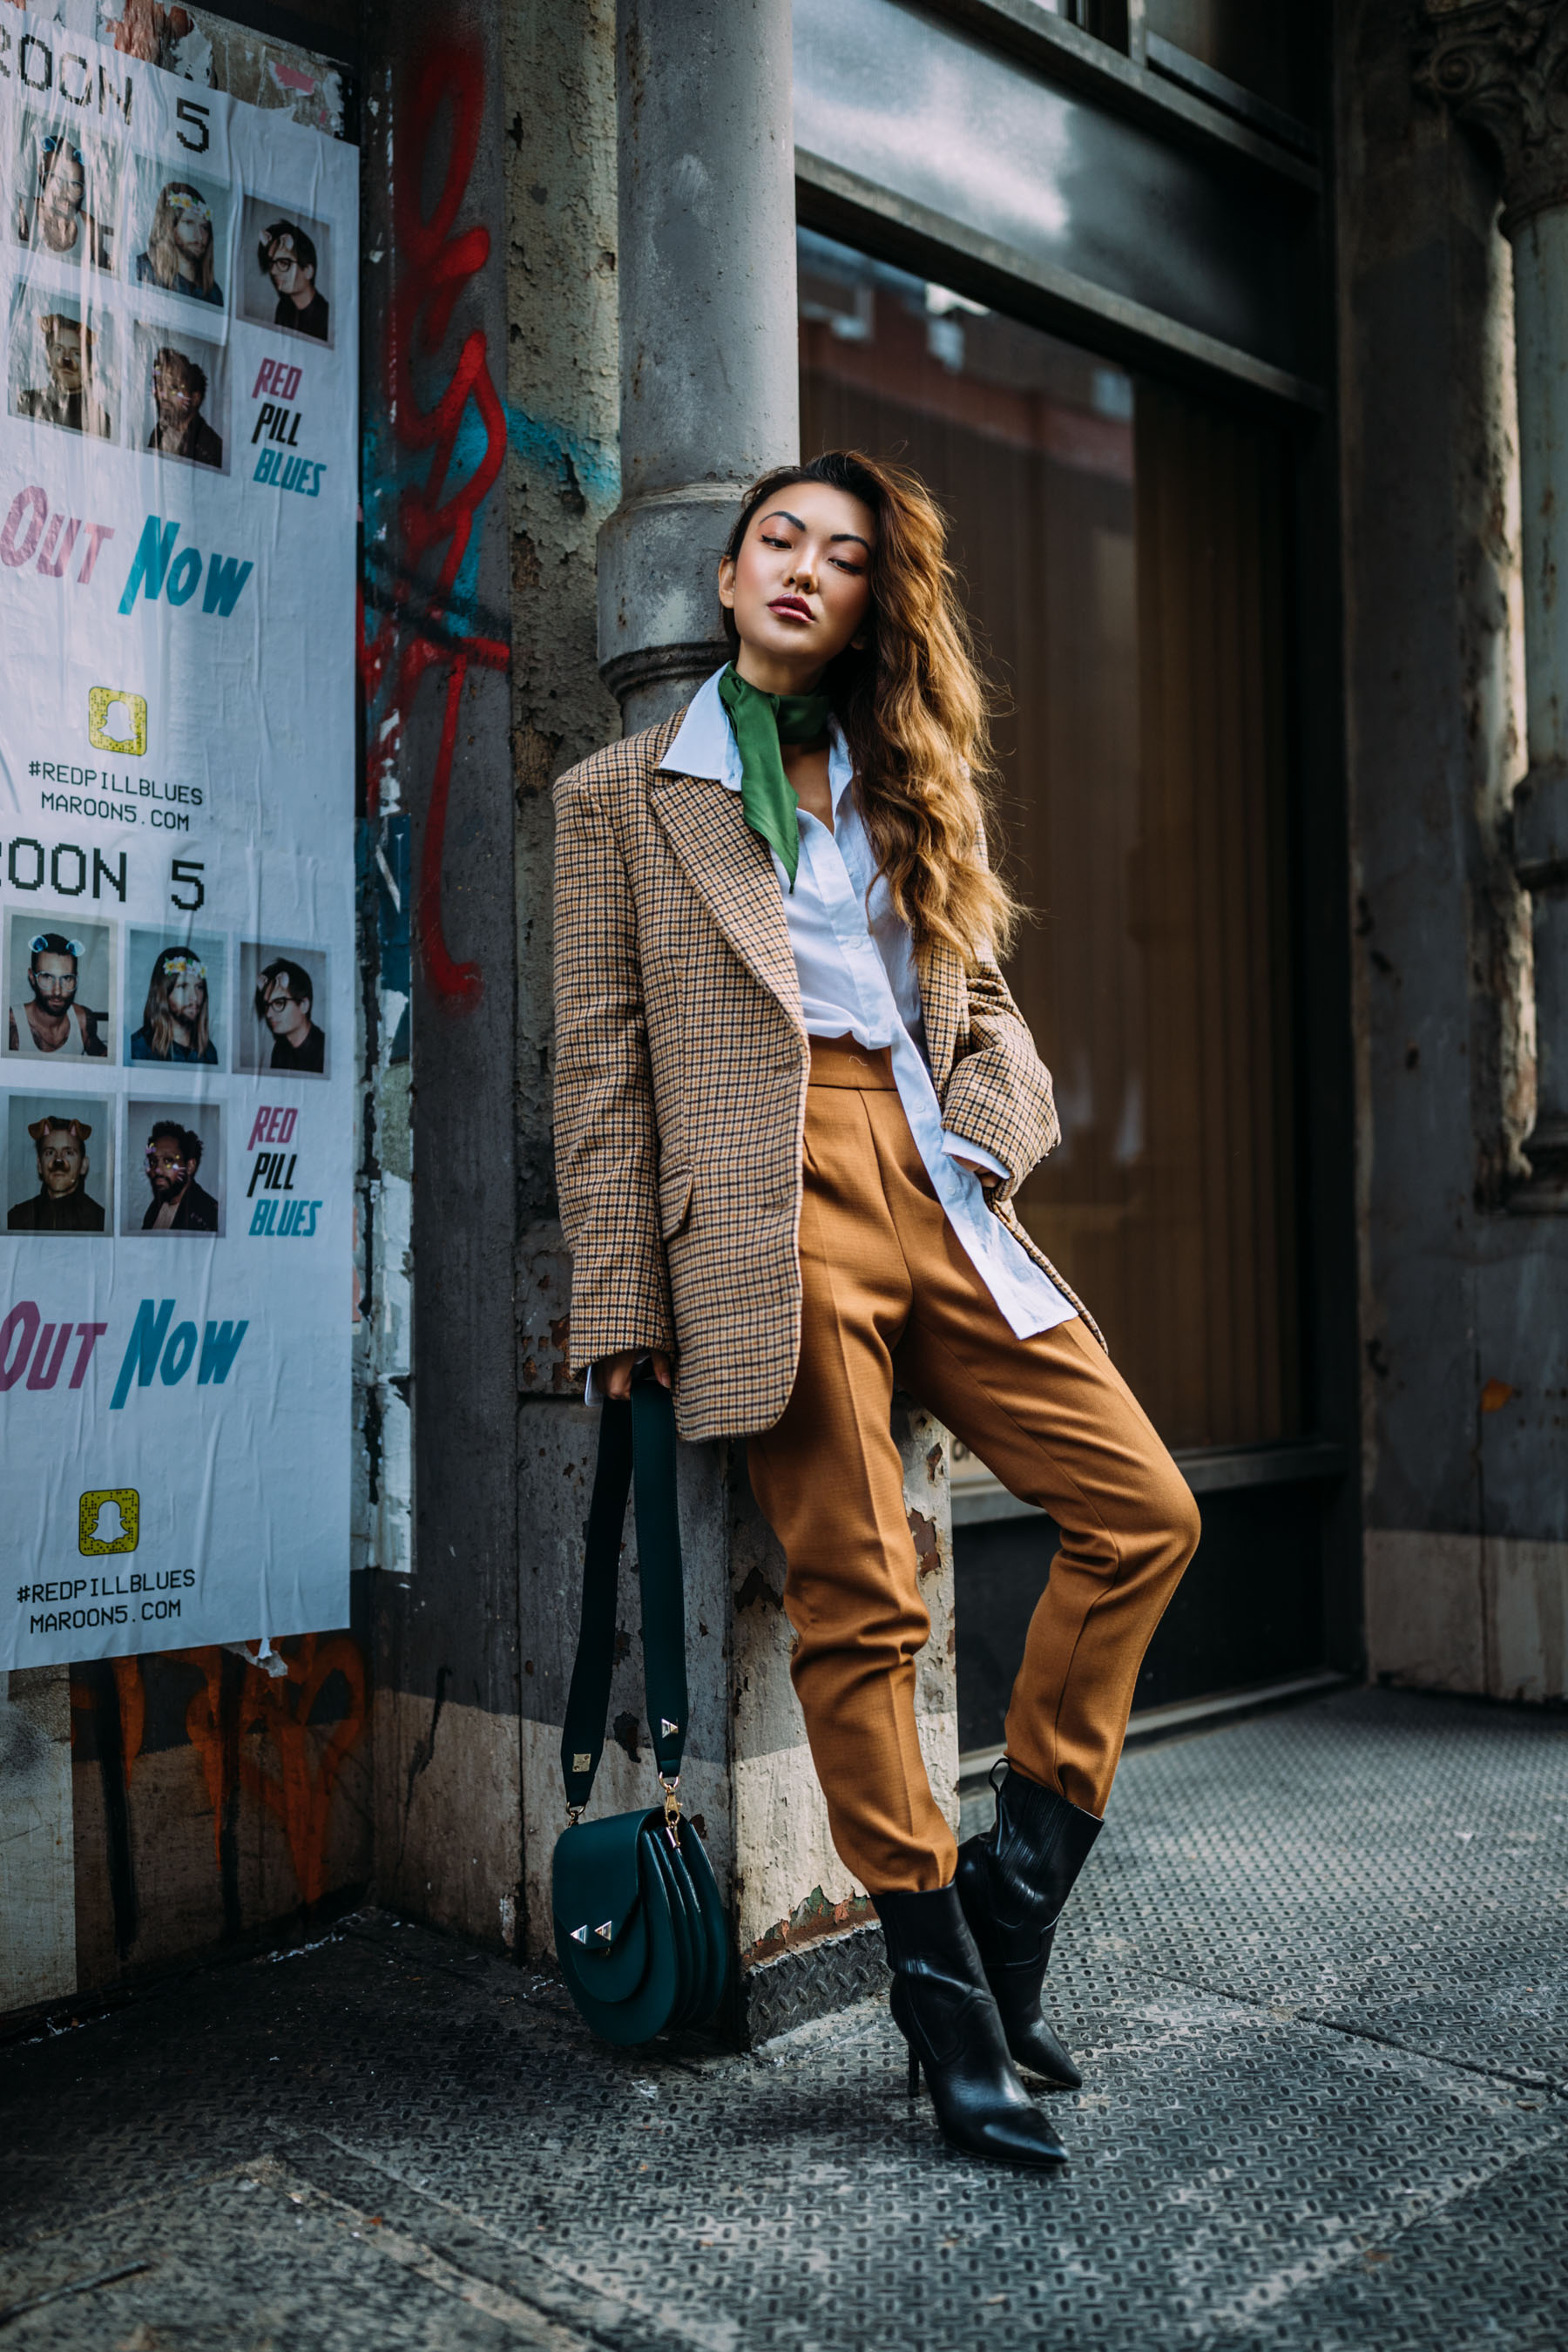 4 Key Pieces to Pull Off Menswear-Inspired Outfits // Notjessfashion.com // NYC fashion blogger, top fashion blogger, asian blogger, oversized blazer, plaid blazer, menswear inspired fashion, jessica wang, green accessories, street style fashion